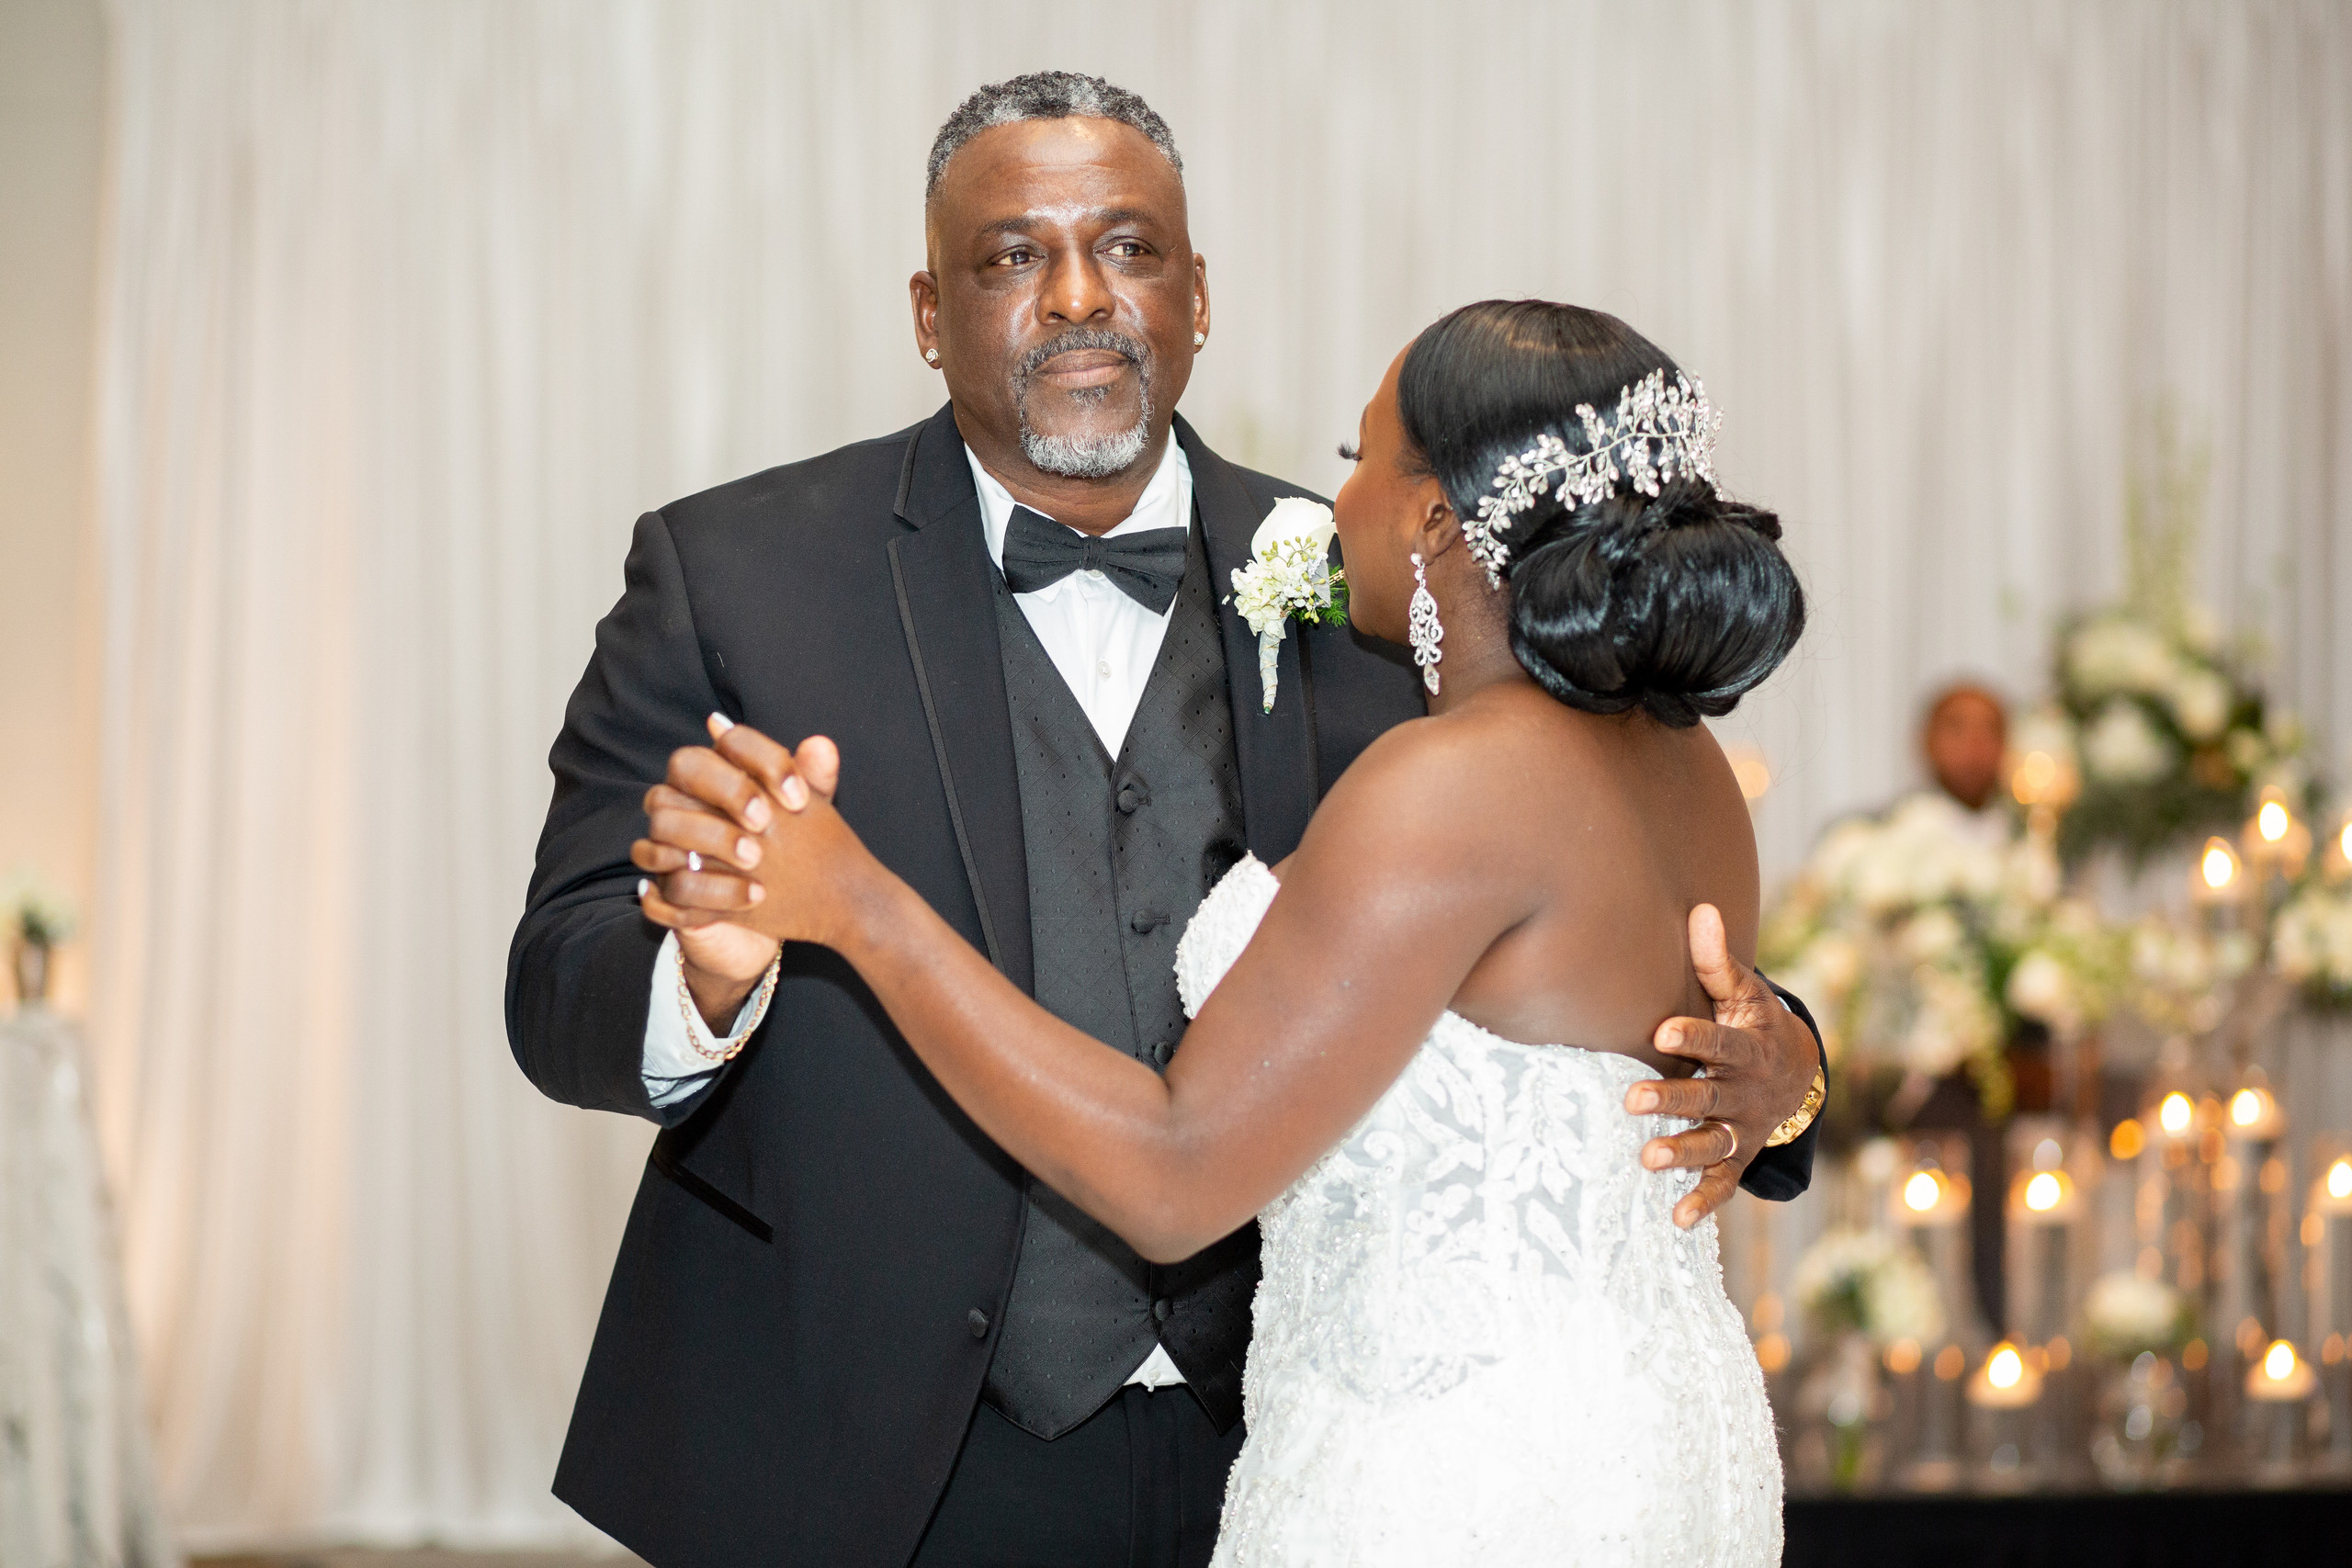 The father daughter dance during the wedding reception at the Hilton Main in Norfolk, Virginia.